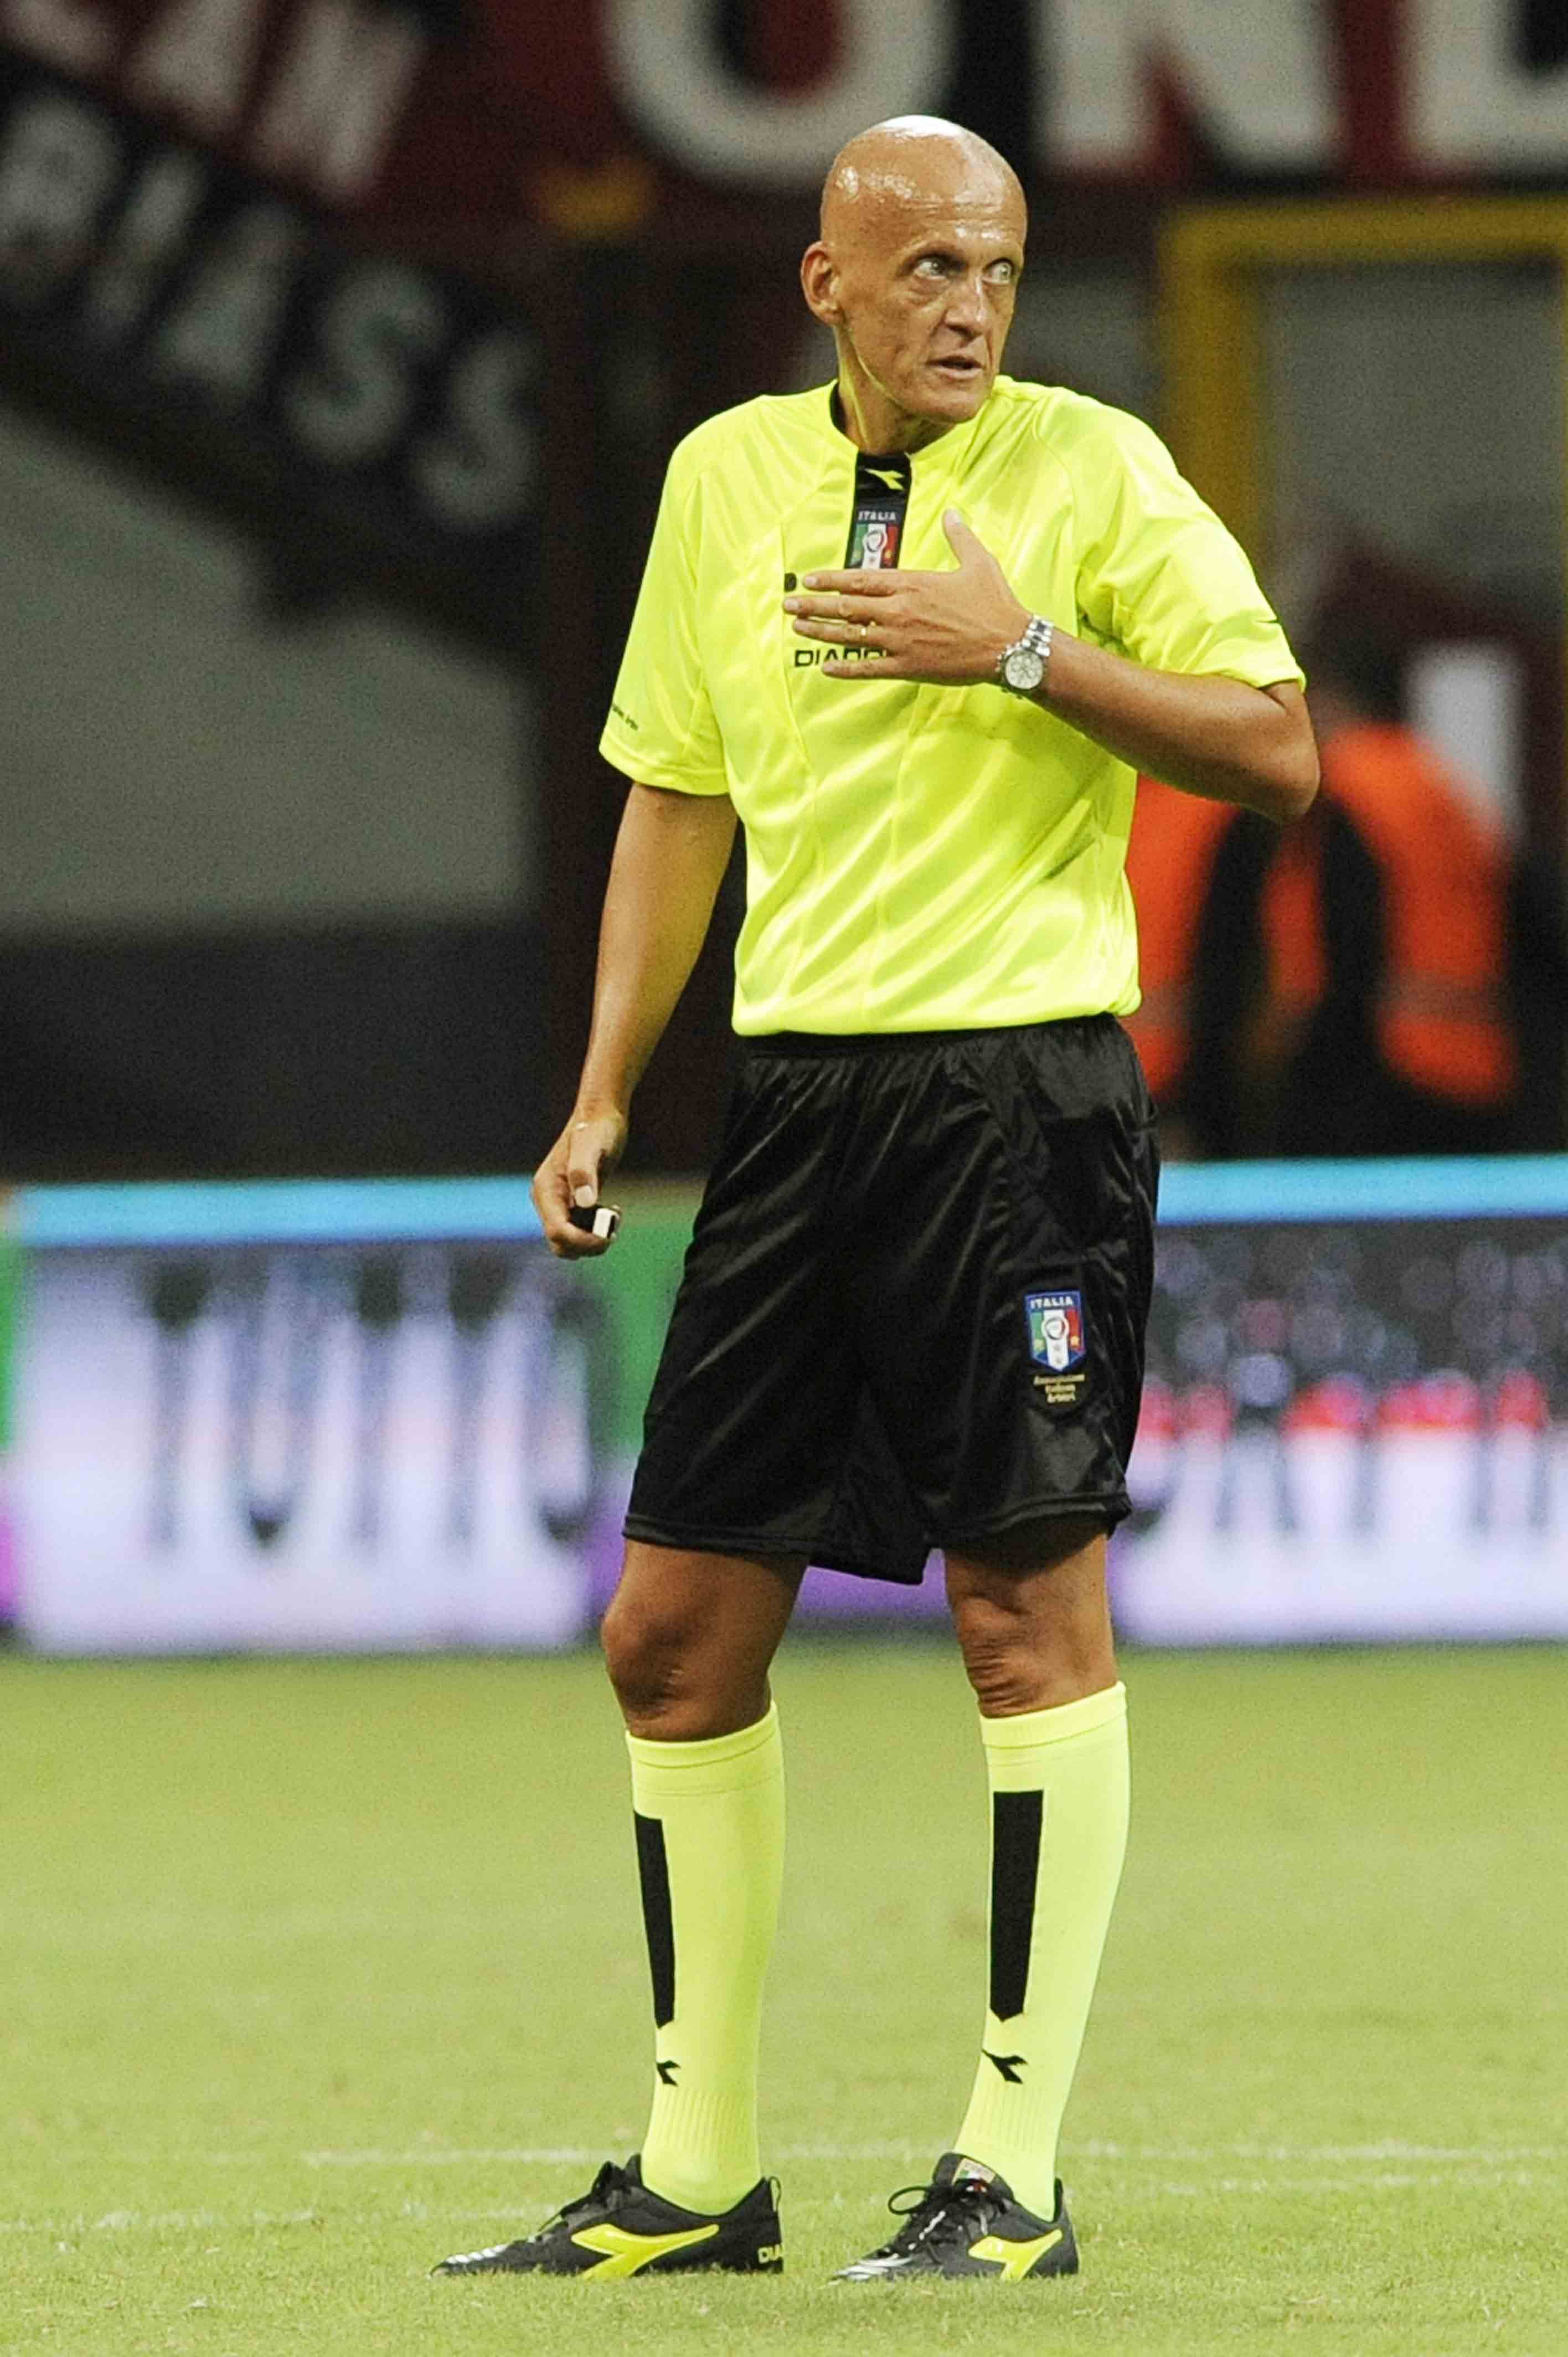 d844db4f49f Pierluigi Collina is considered to be the best referee ever. He is wearing  the Diadora Brasil s soccer cleats